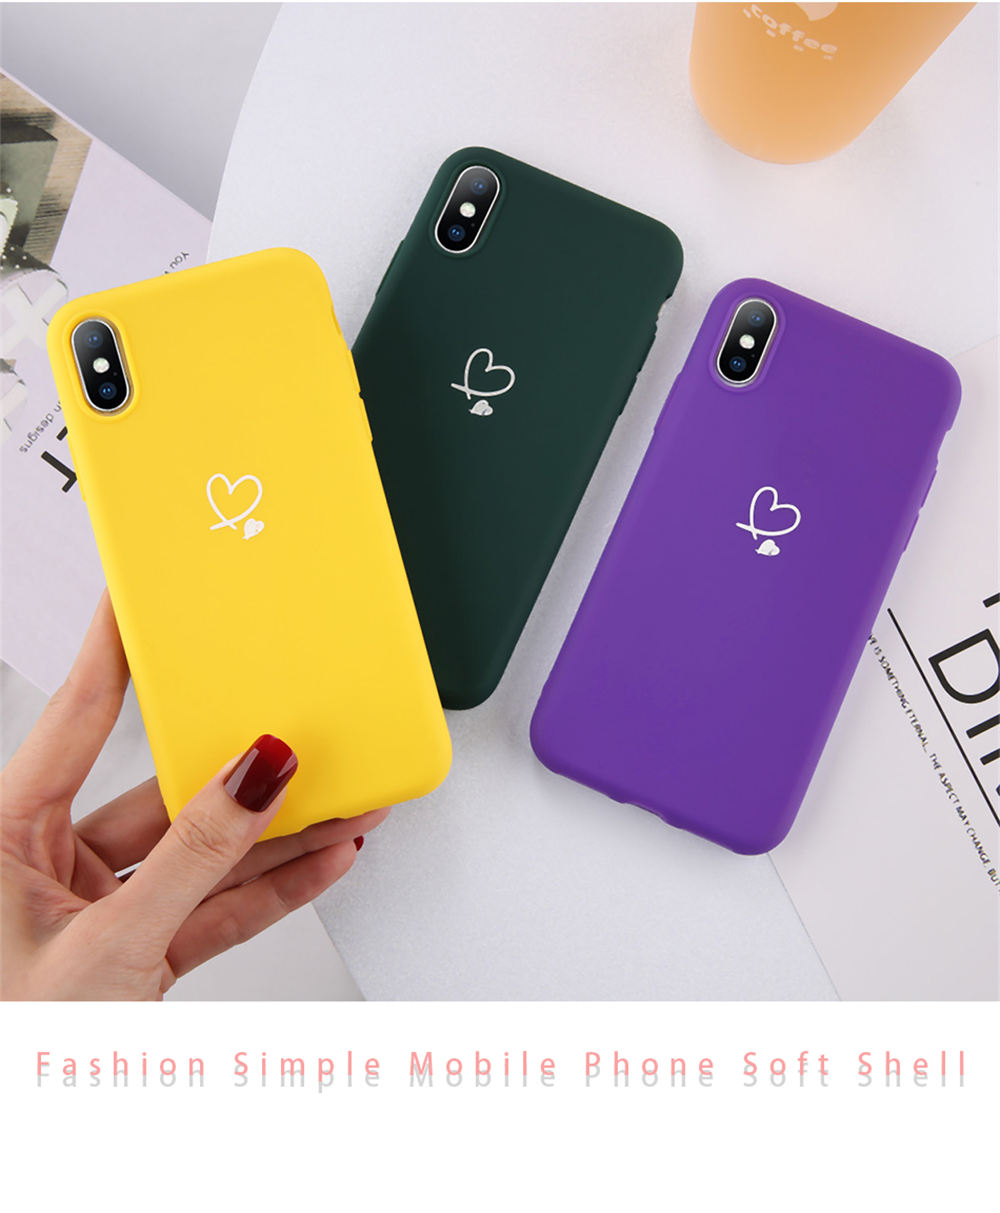 HTB1wirGcQxz61VjSZFtq6yDSVXas - Lovebay Colorful Love Heart Case For iPhone 6 6S 7 8 Plus 11 Pro X XR XS Max 5 5s SE Candy Color Phone Case Soft TPU Back Cover